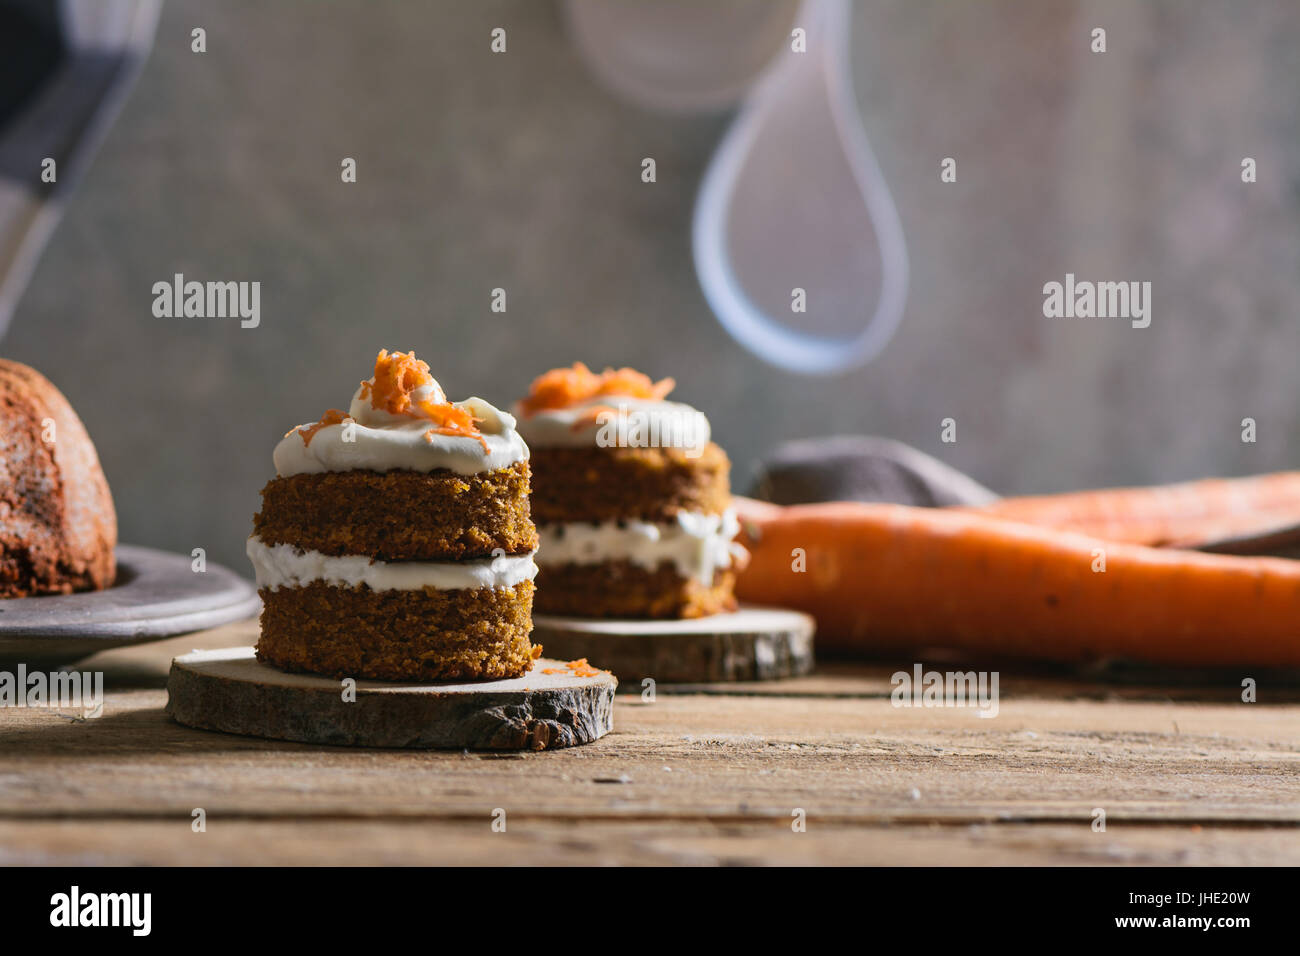 Mini carrot cake, stuffed with cream cheese, on rustic wood plate, close up Stock Photo